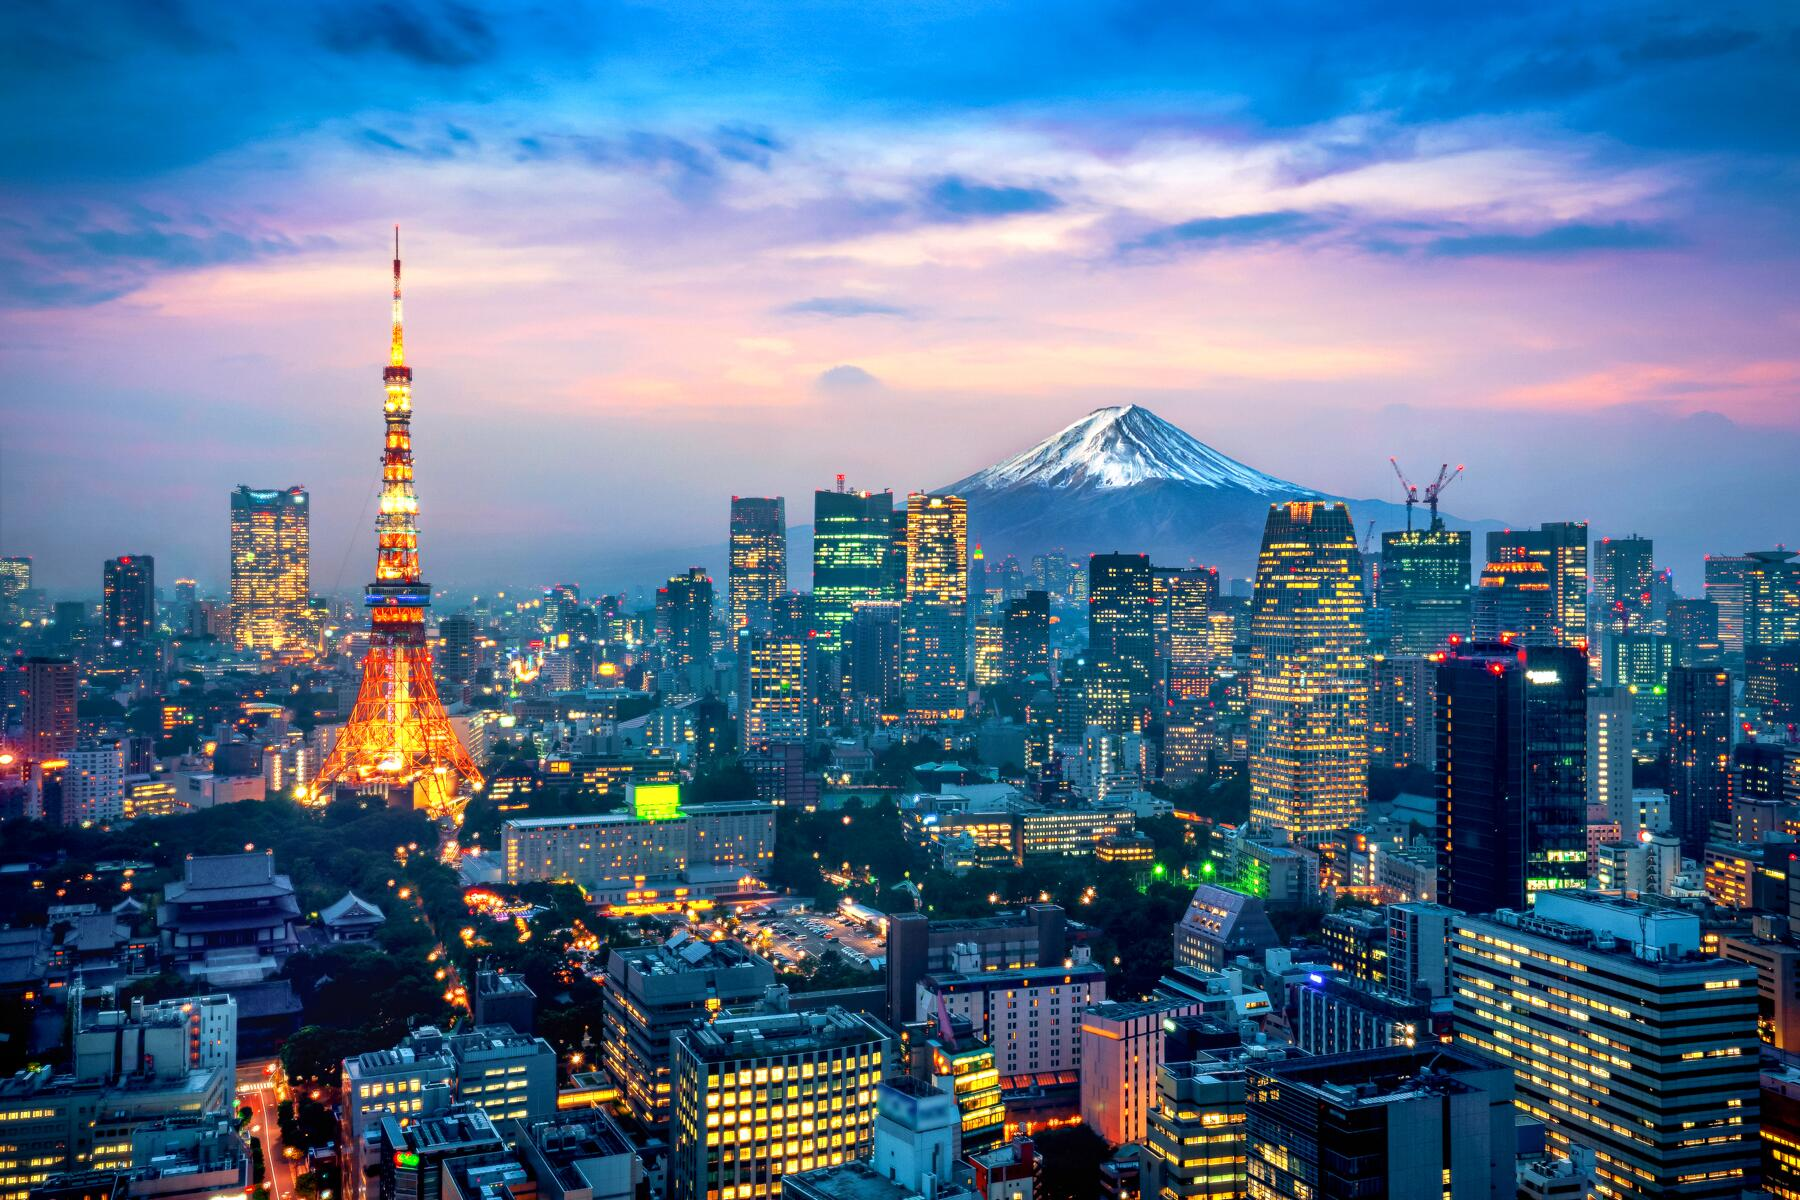 32_NewHotels2020__FauchonTokyo_iStock-1131743616